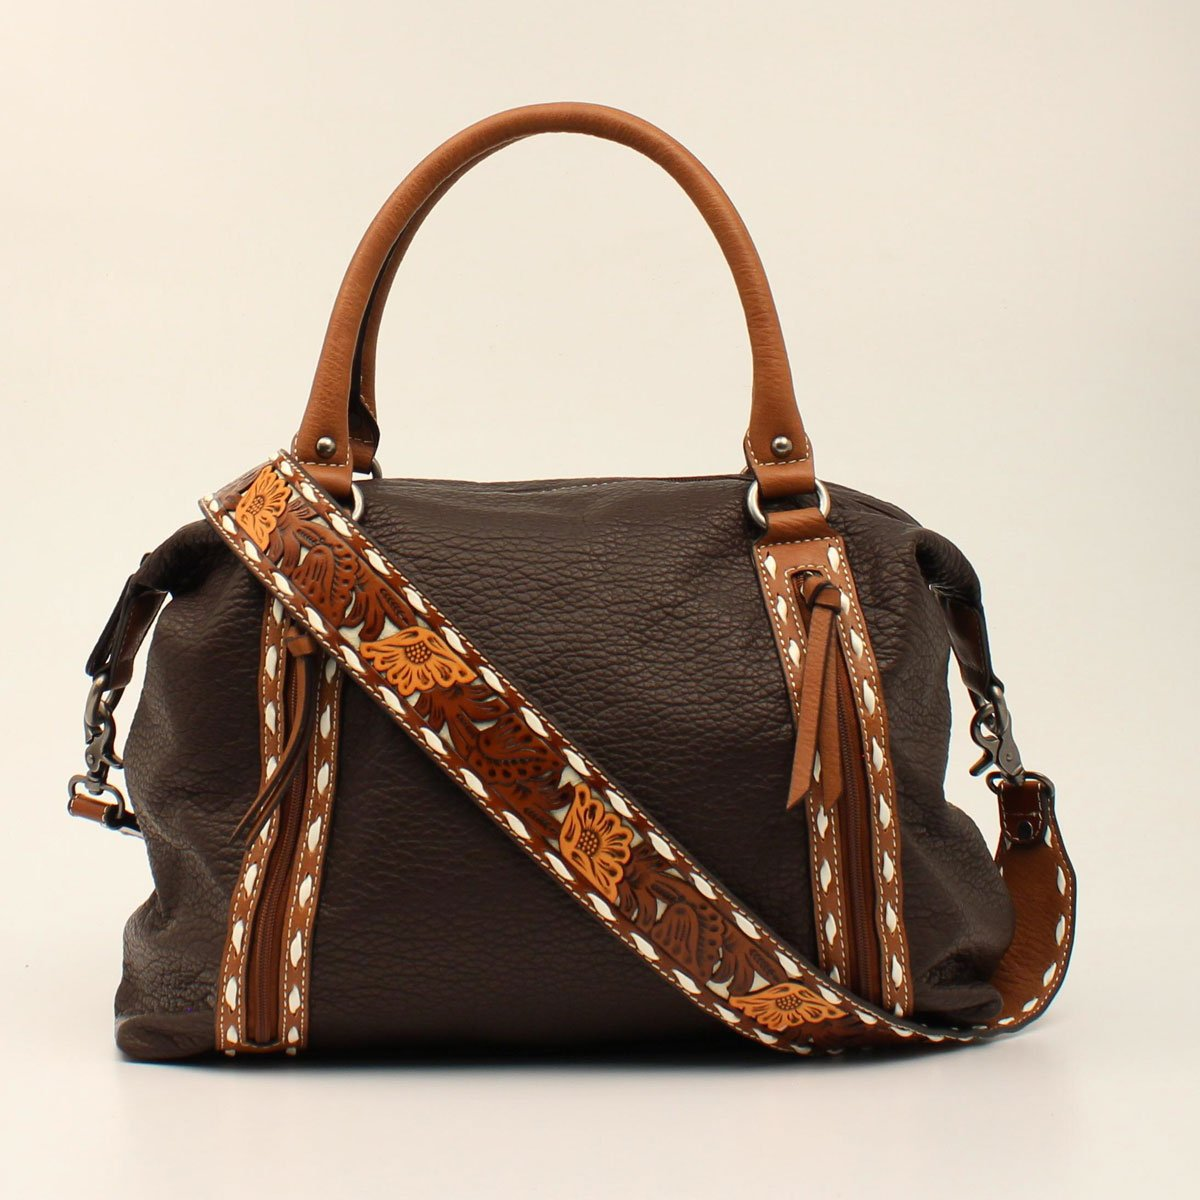 Aaliyah Crossbody Tote with Conceal & Carry